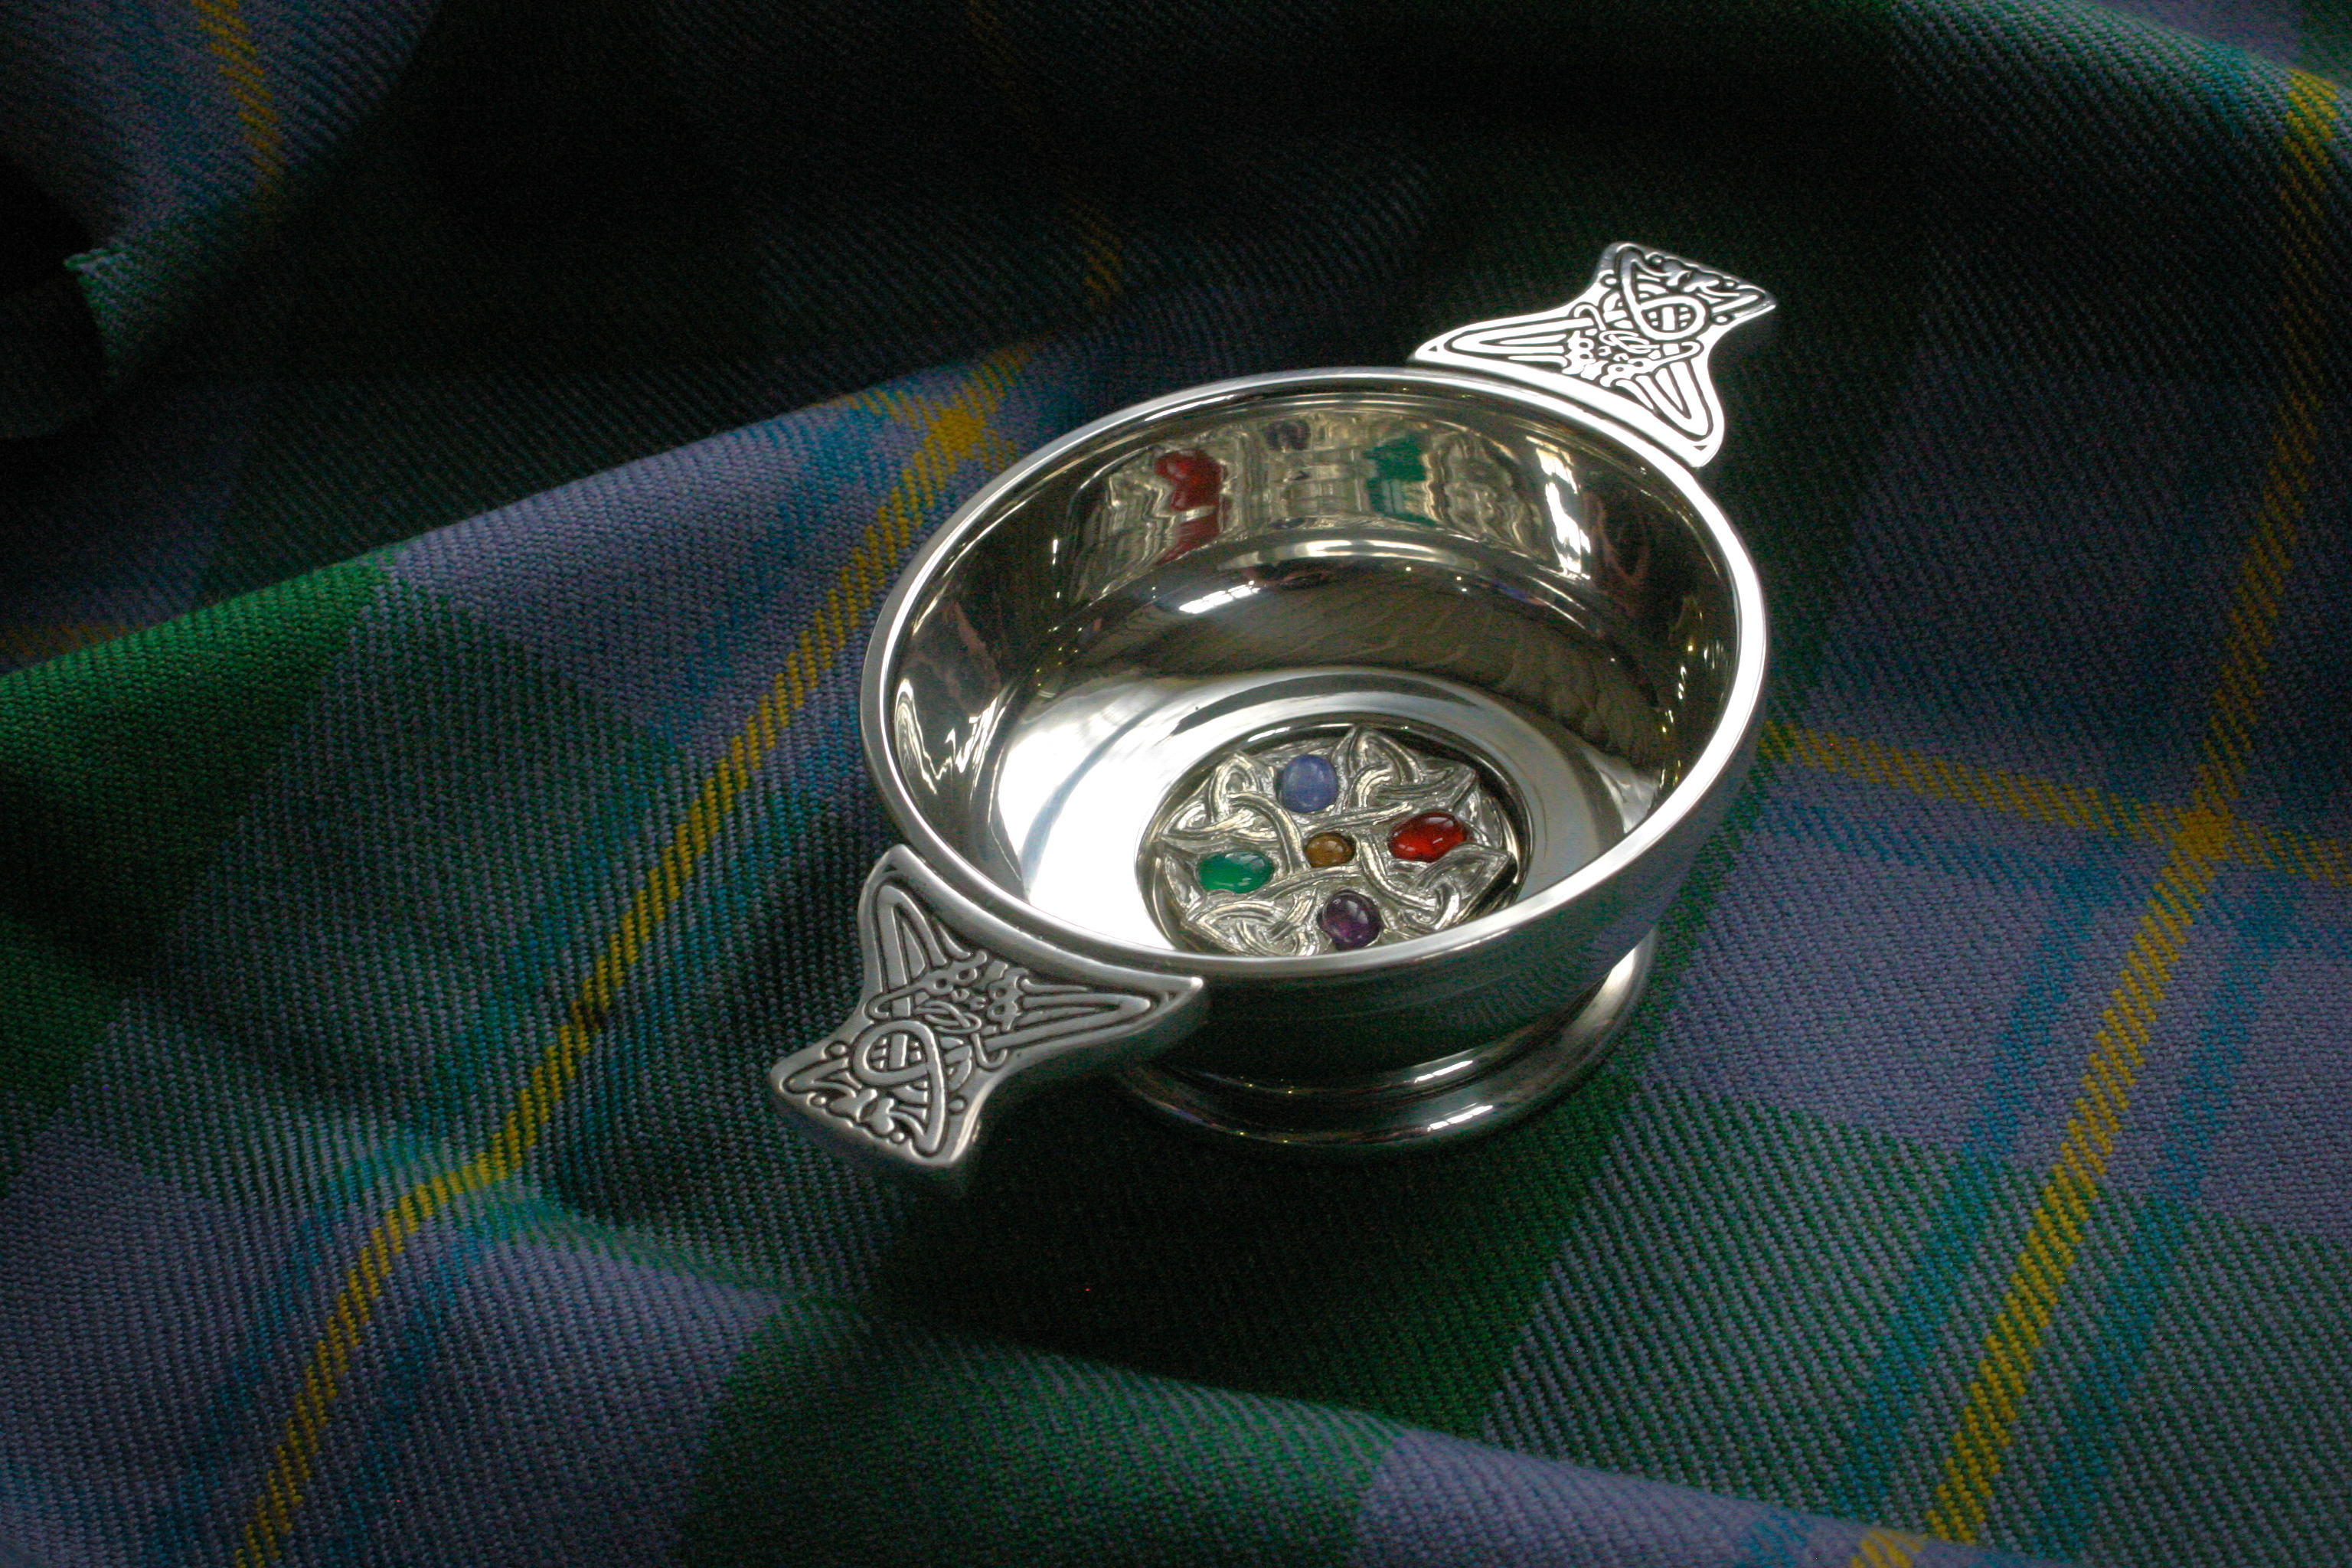 Our fancy Celtic Gemset Quaich, complete with gemstones